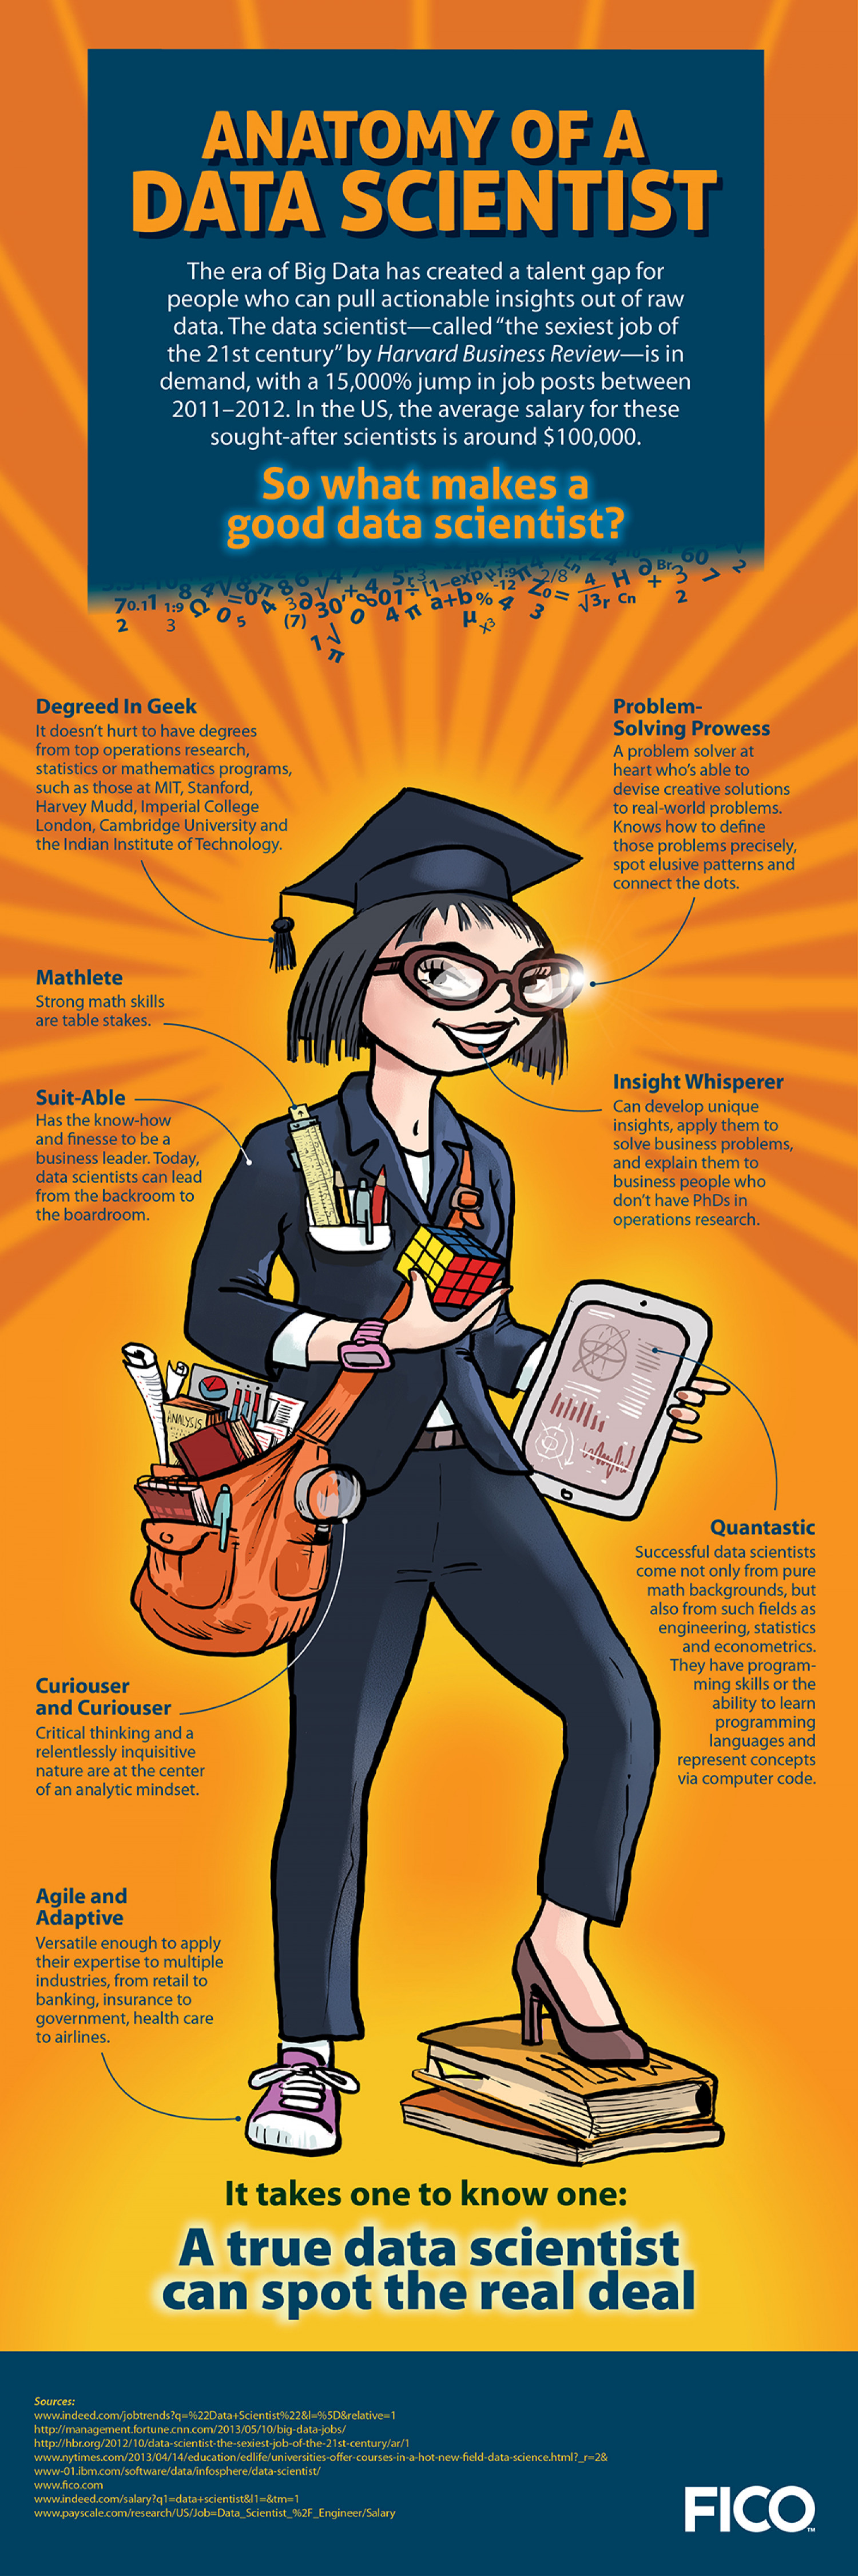 What Makes A Good Data Scientist? Infographic